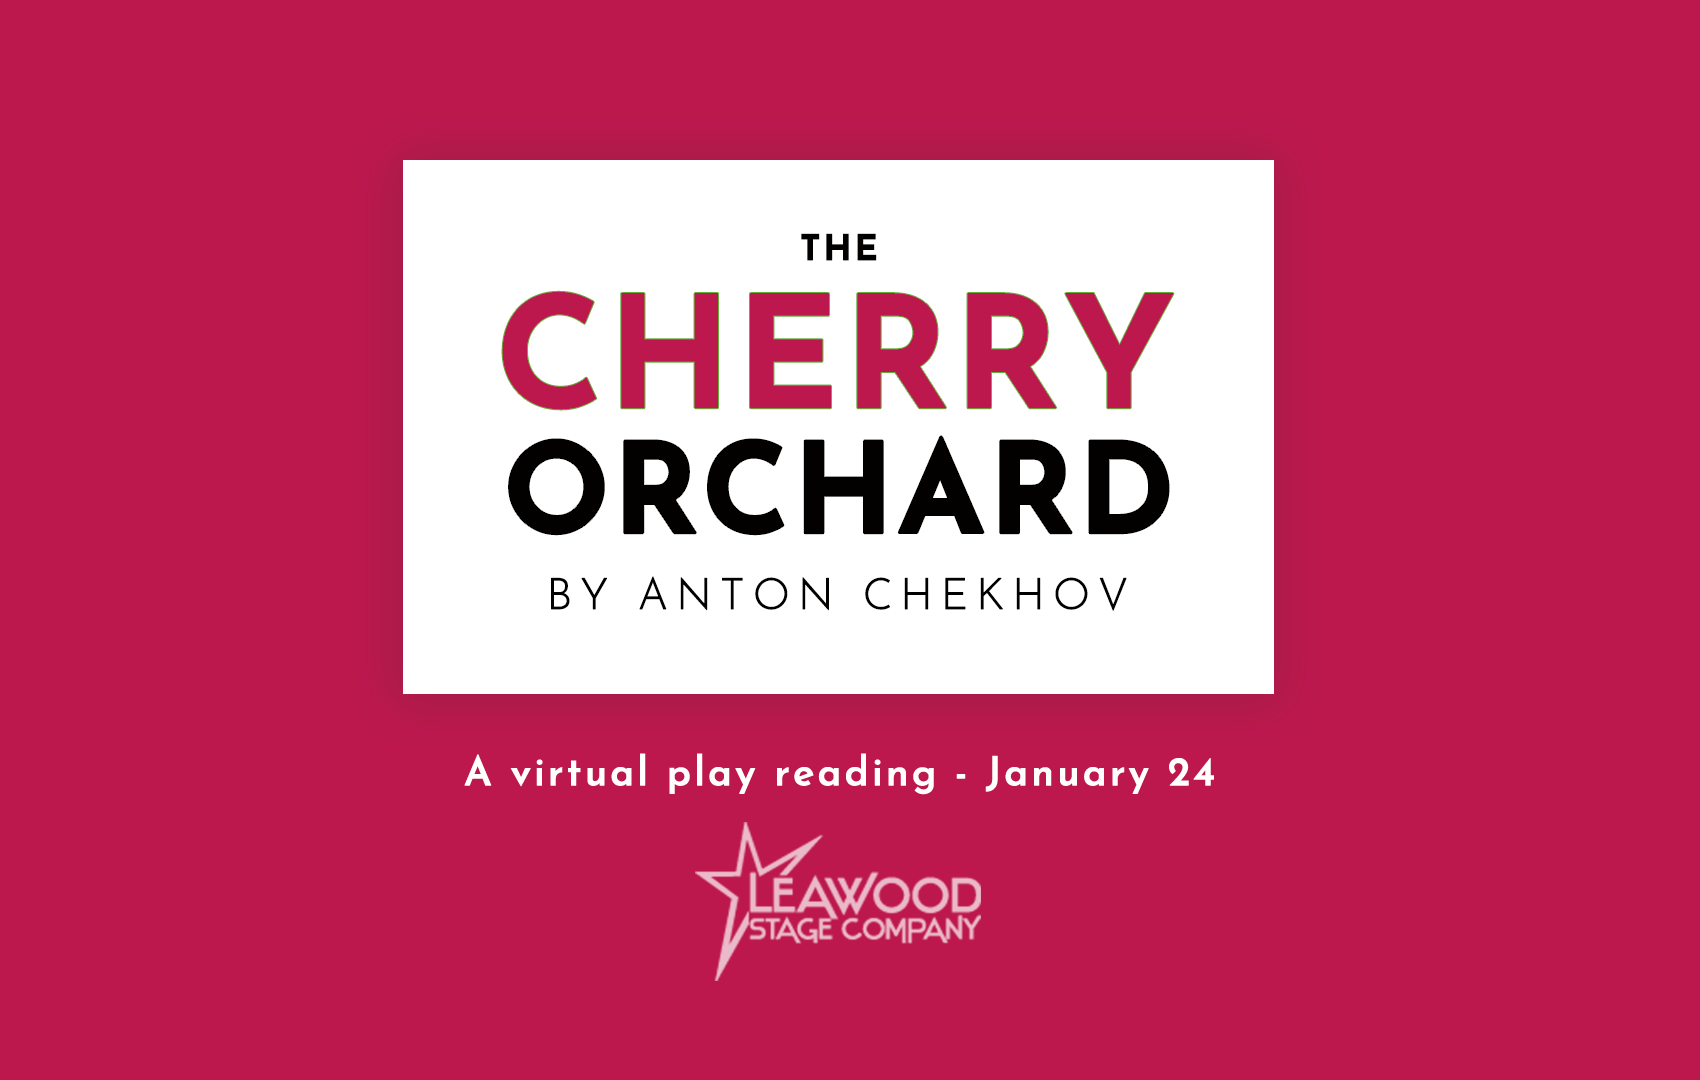 The Cherry Orchard Virtual Play Reading